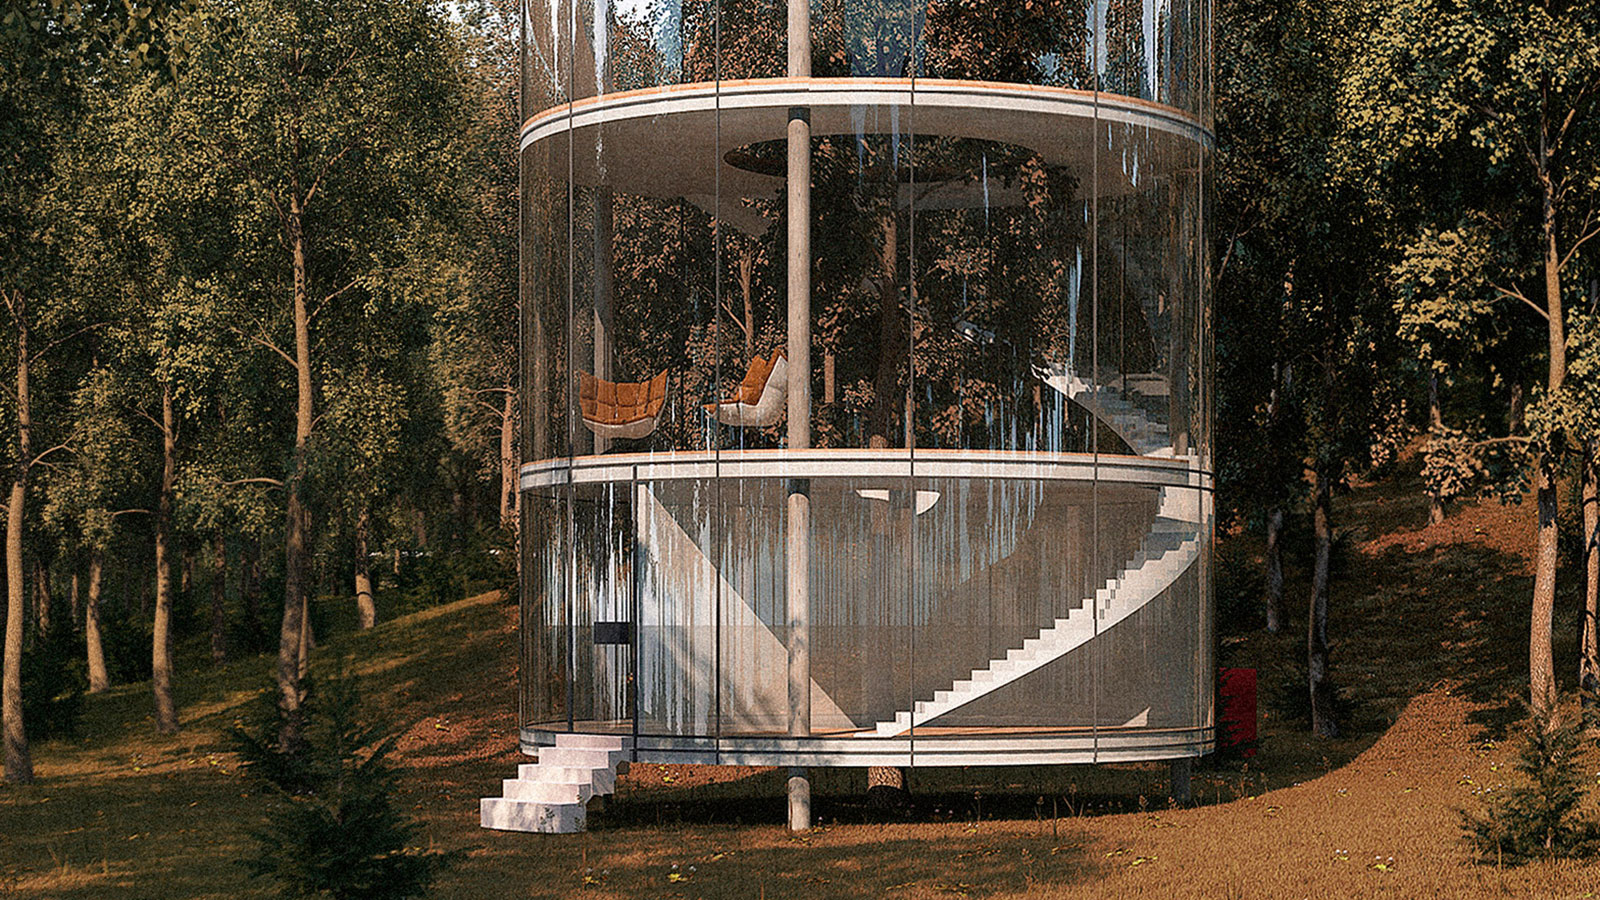 The-Tubular-Tree-House-By-Aibek-Almassov-2